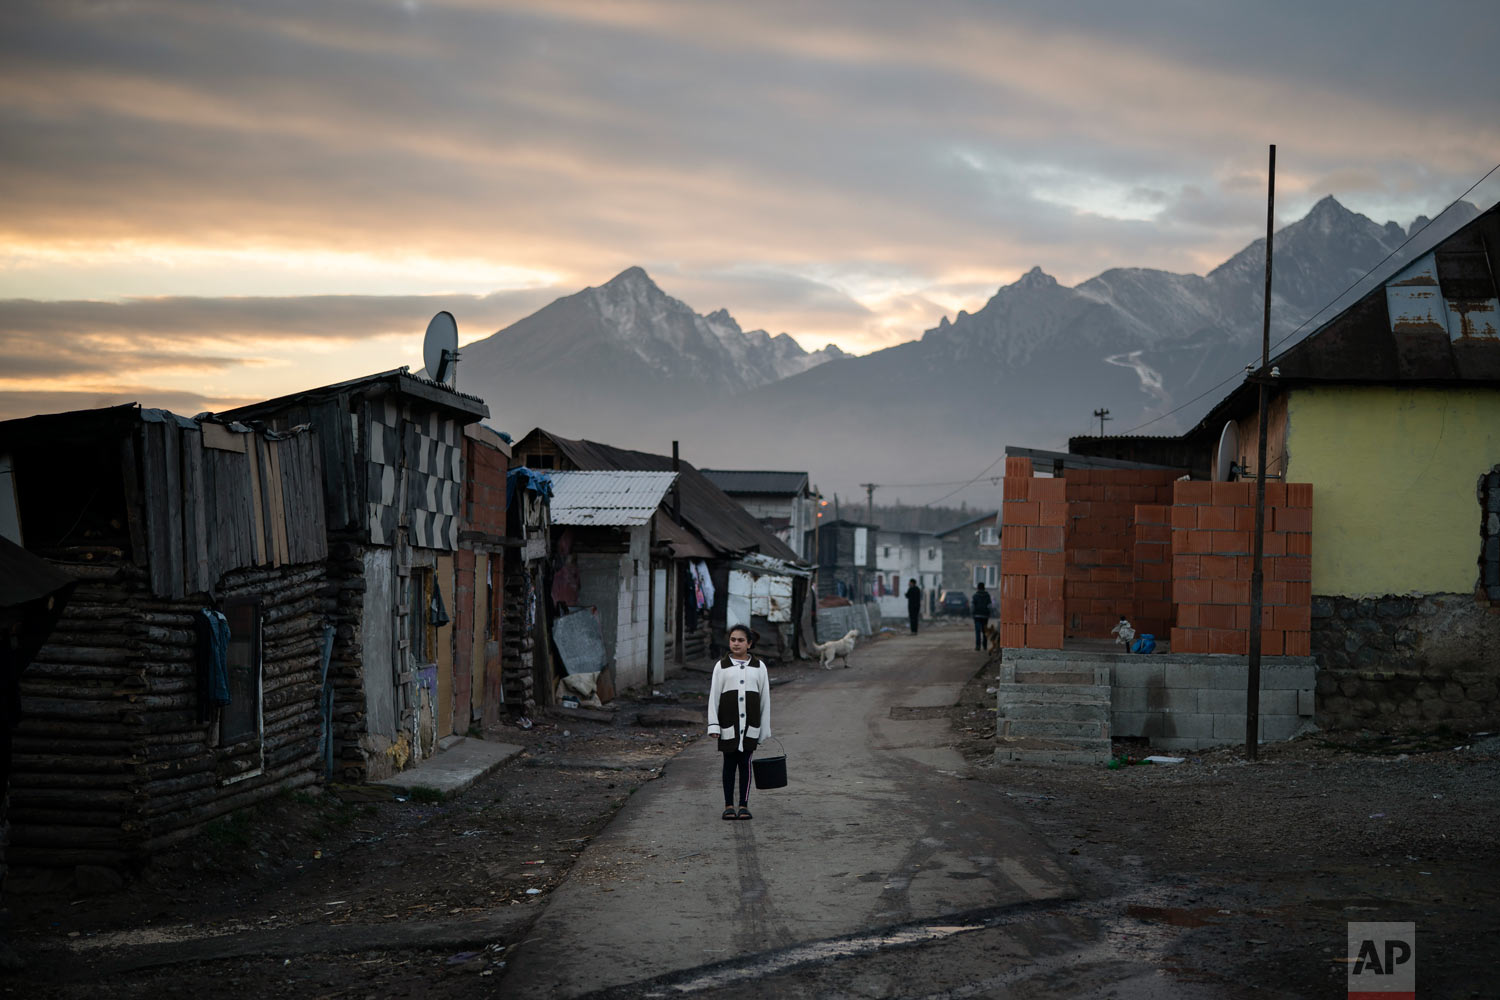 A Roma girl carries a bucket on Nov. 16, 2018, in a village near Kezmarok, Slovakia. (AP Photo/Felipe Dana)